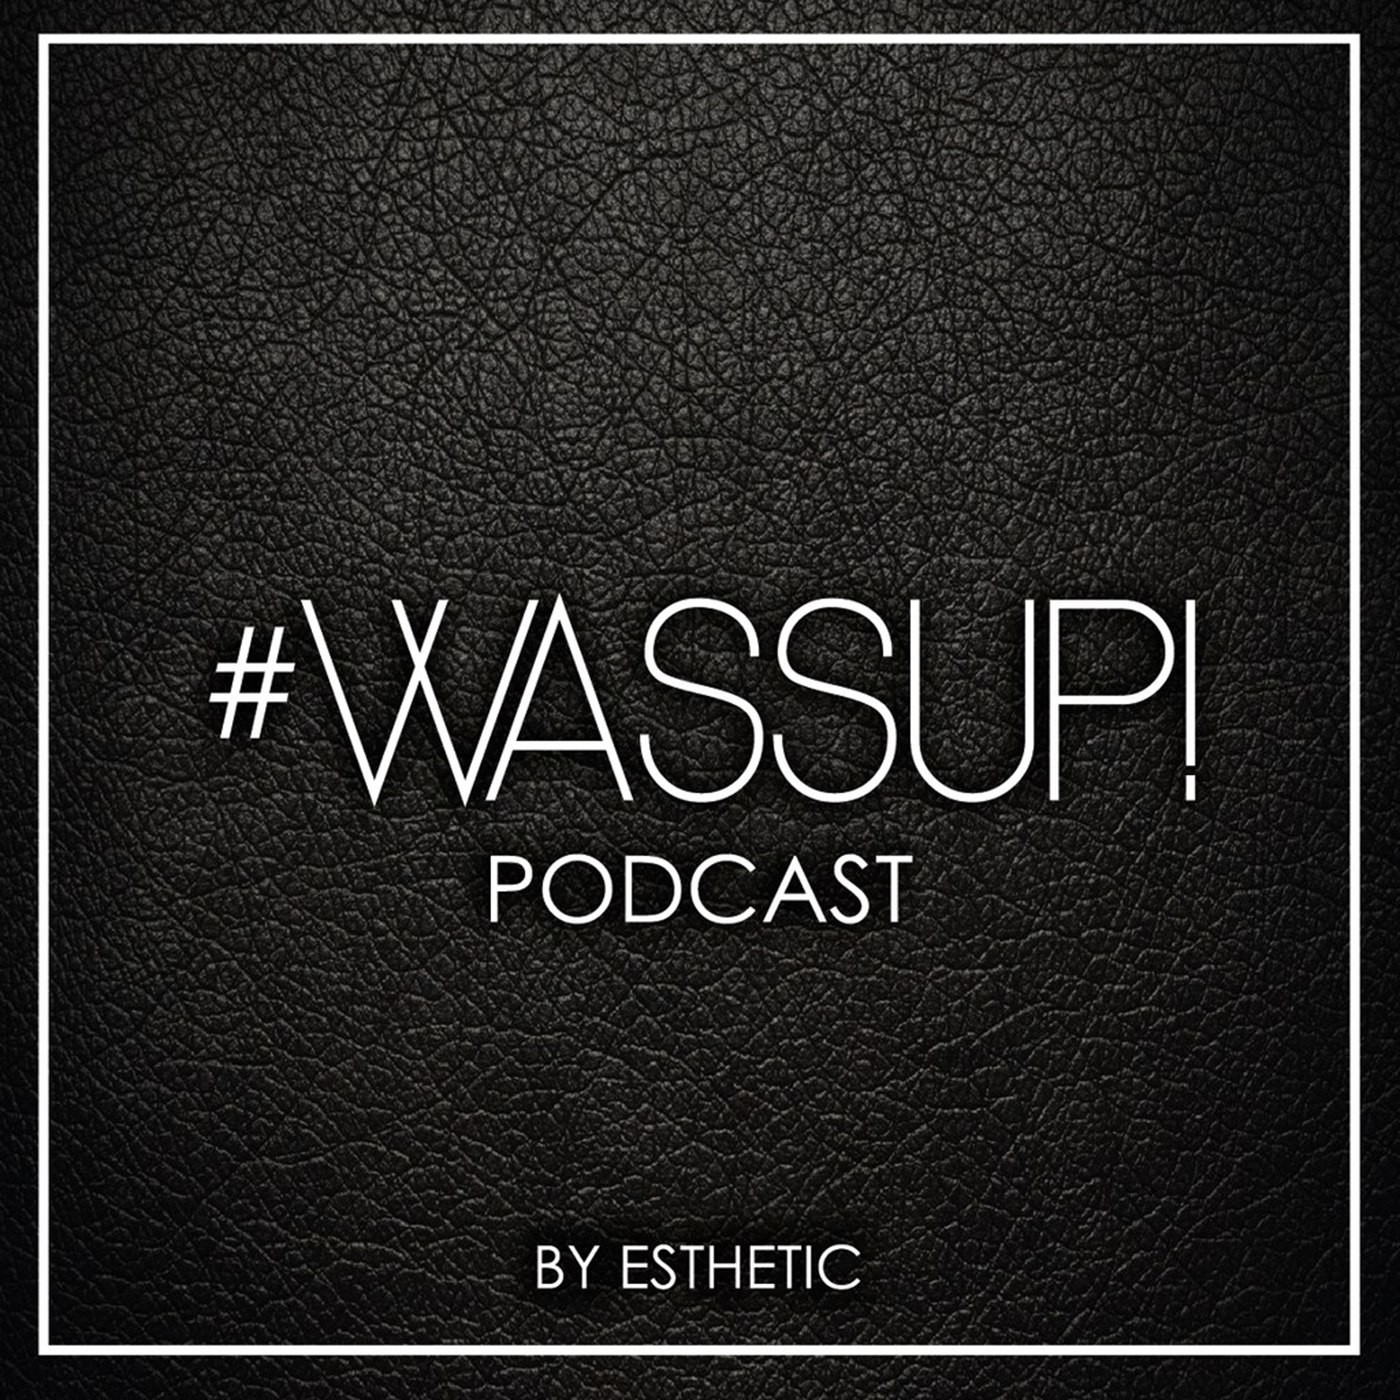 #WASSUP! Podcast by Esthetic